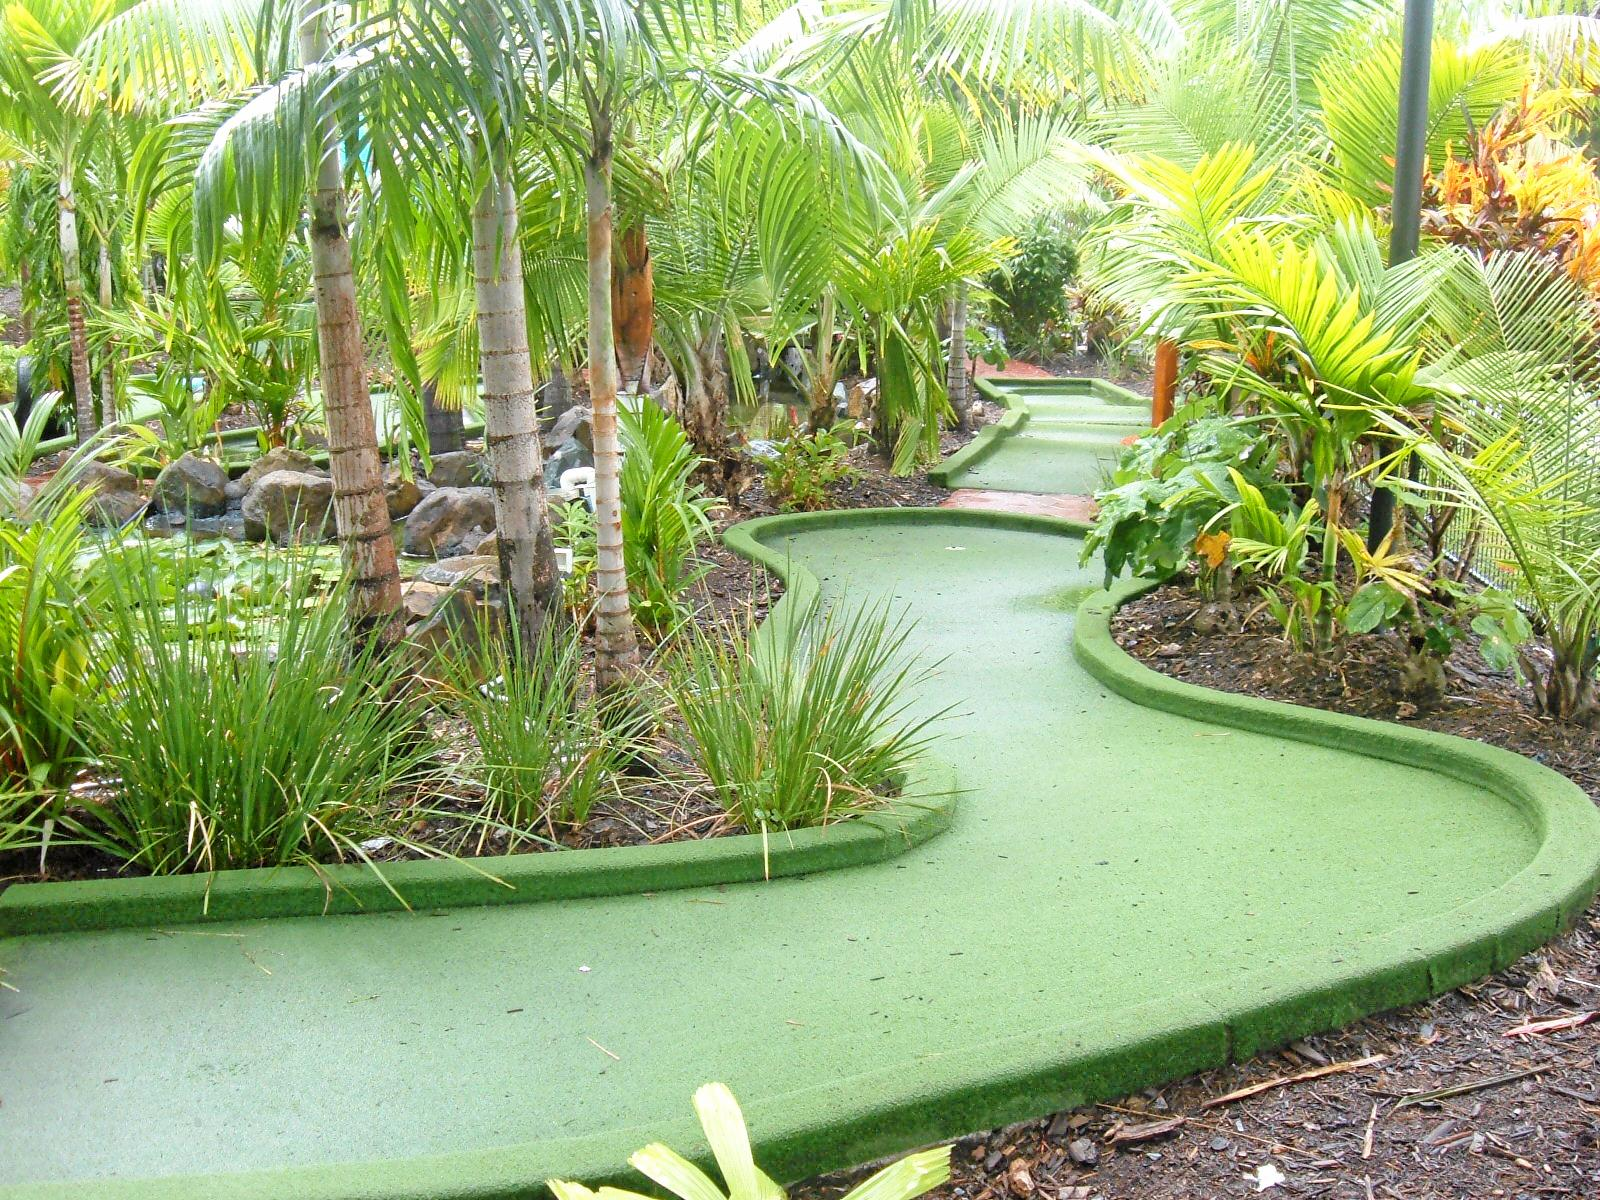 INTRICATE: The mini golf course at Big 4 Adventure Whitsunday Resort, Airlie Beach offers plenty of twists and turns.